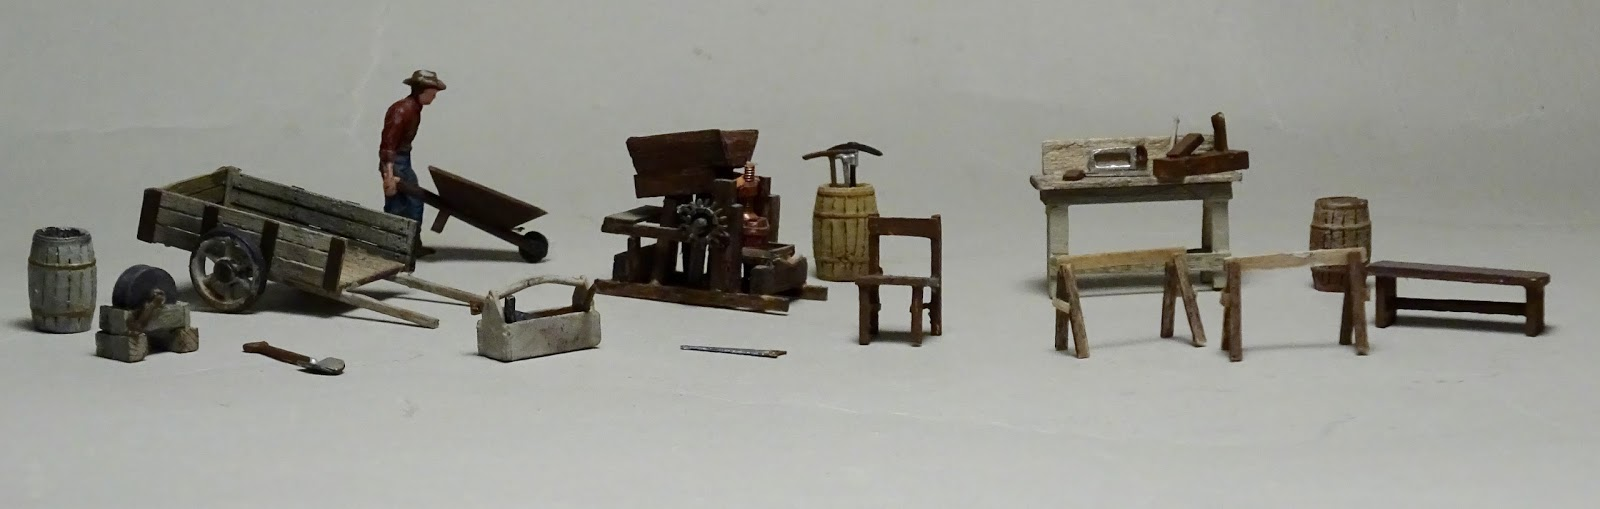 scratch built as are the chair bench work bench saw horses and the strange machine in the center that machine is being repaired by the carpenter  [ 1600 x 509 Pixel ]